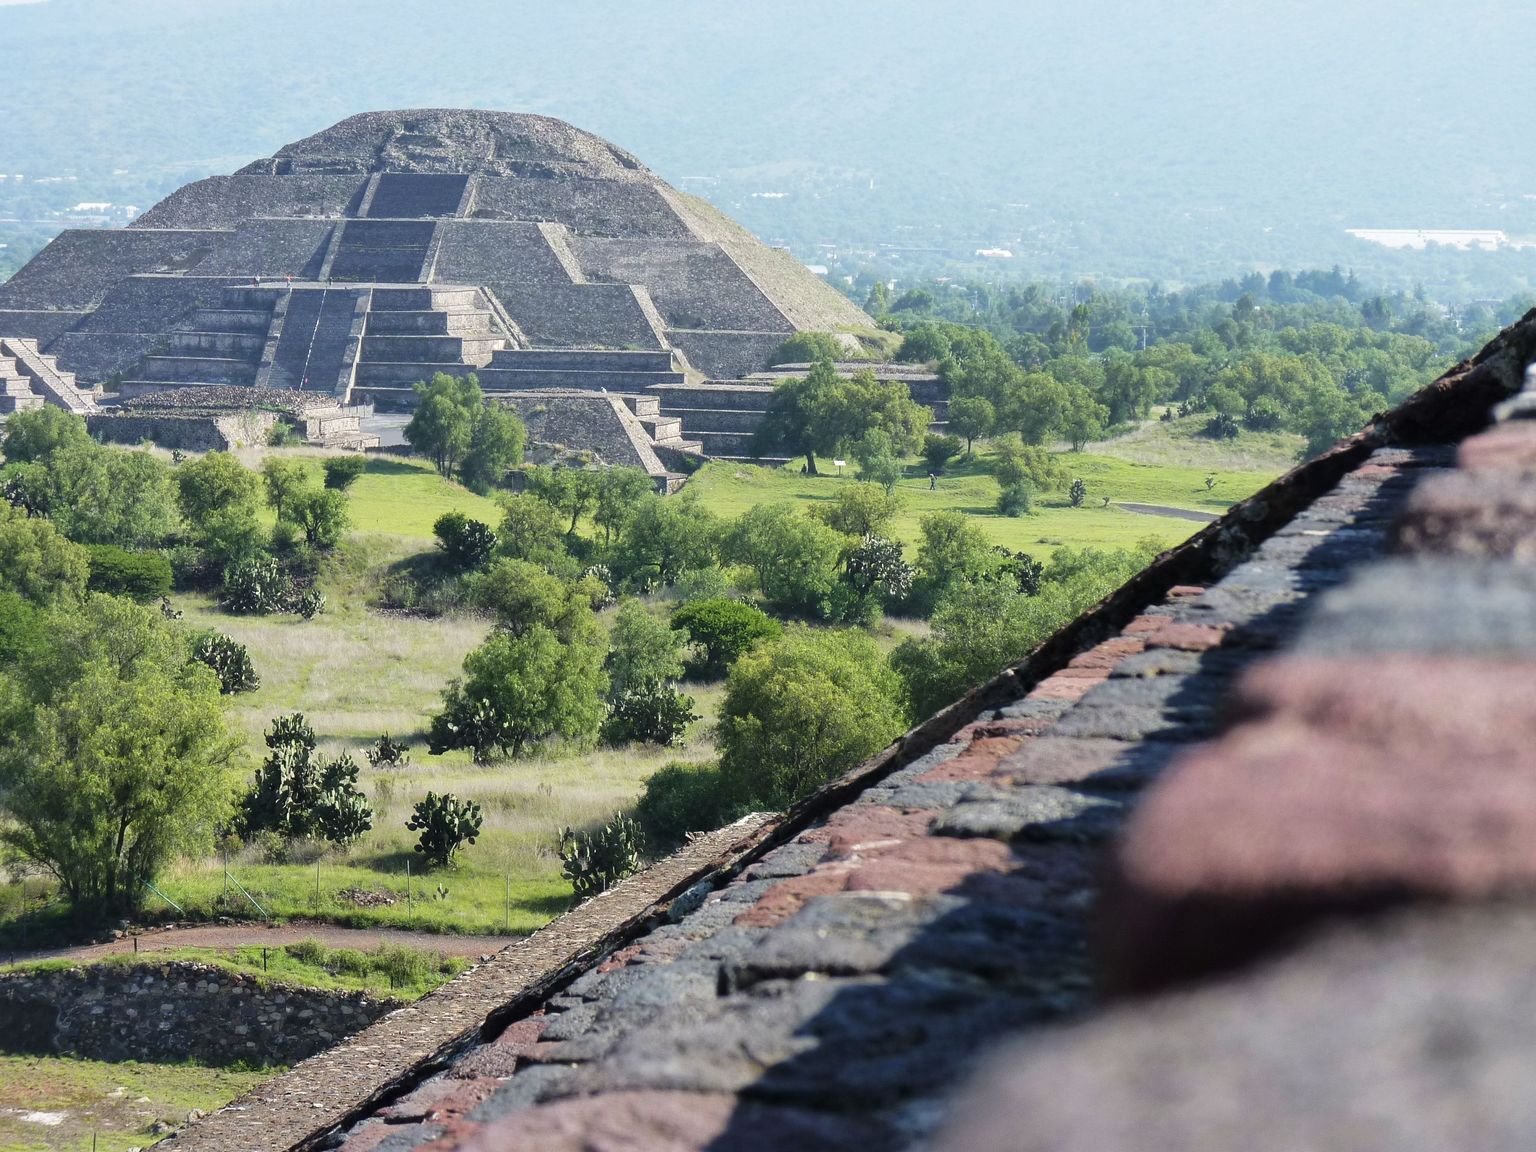 Early Morning Teotihuacan Pyramids Tour with a Private Archeologist